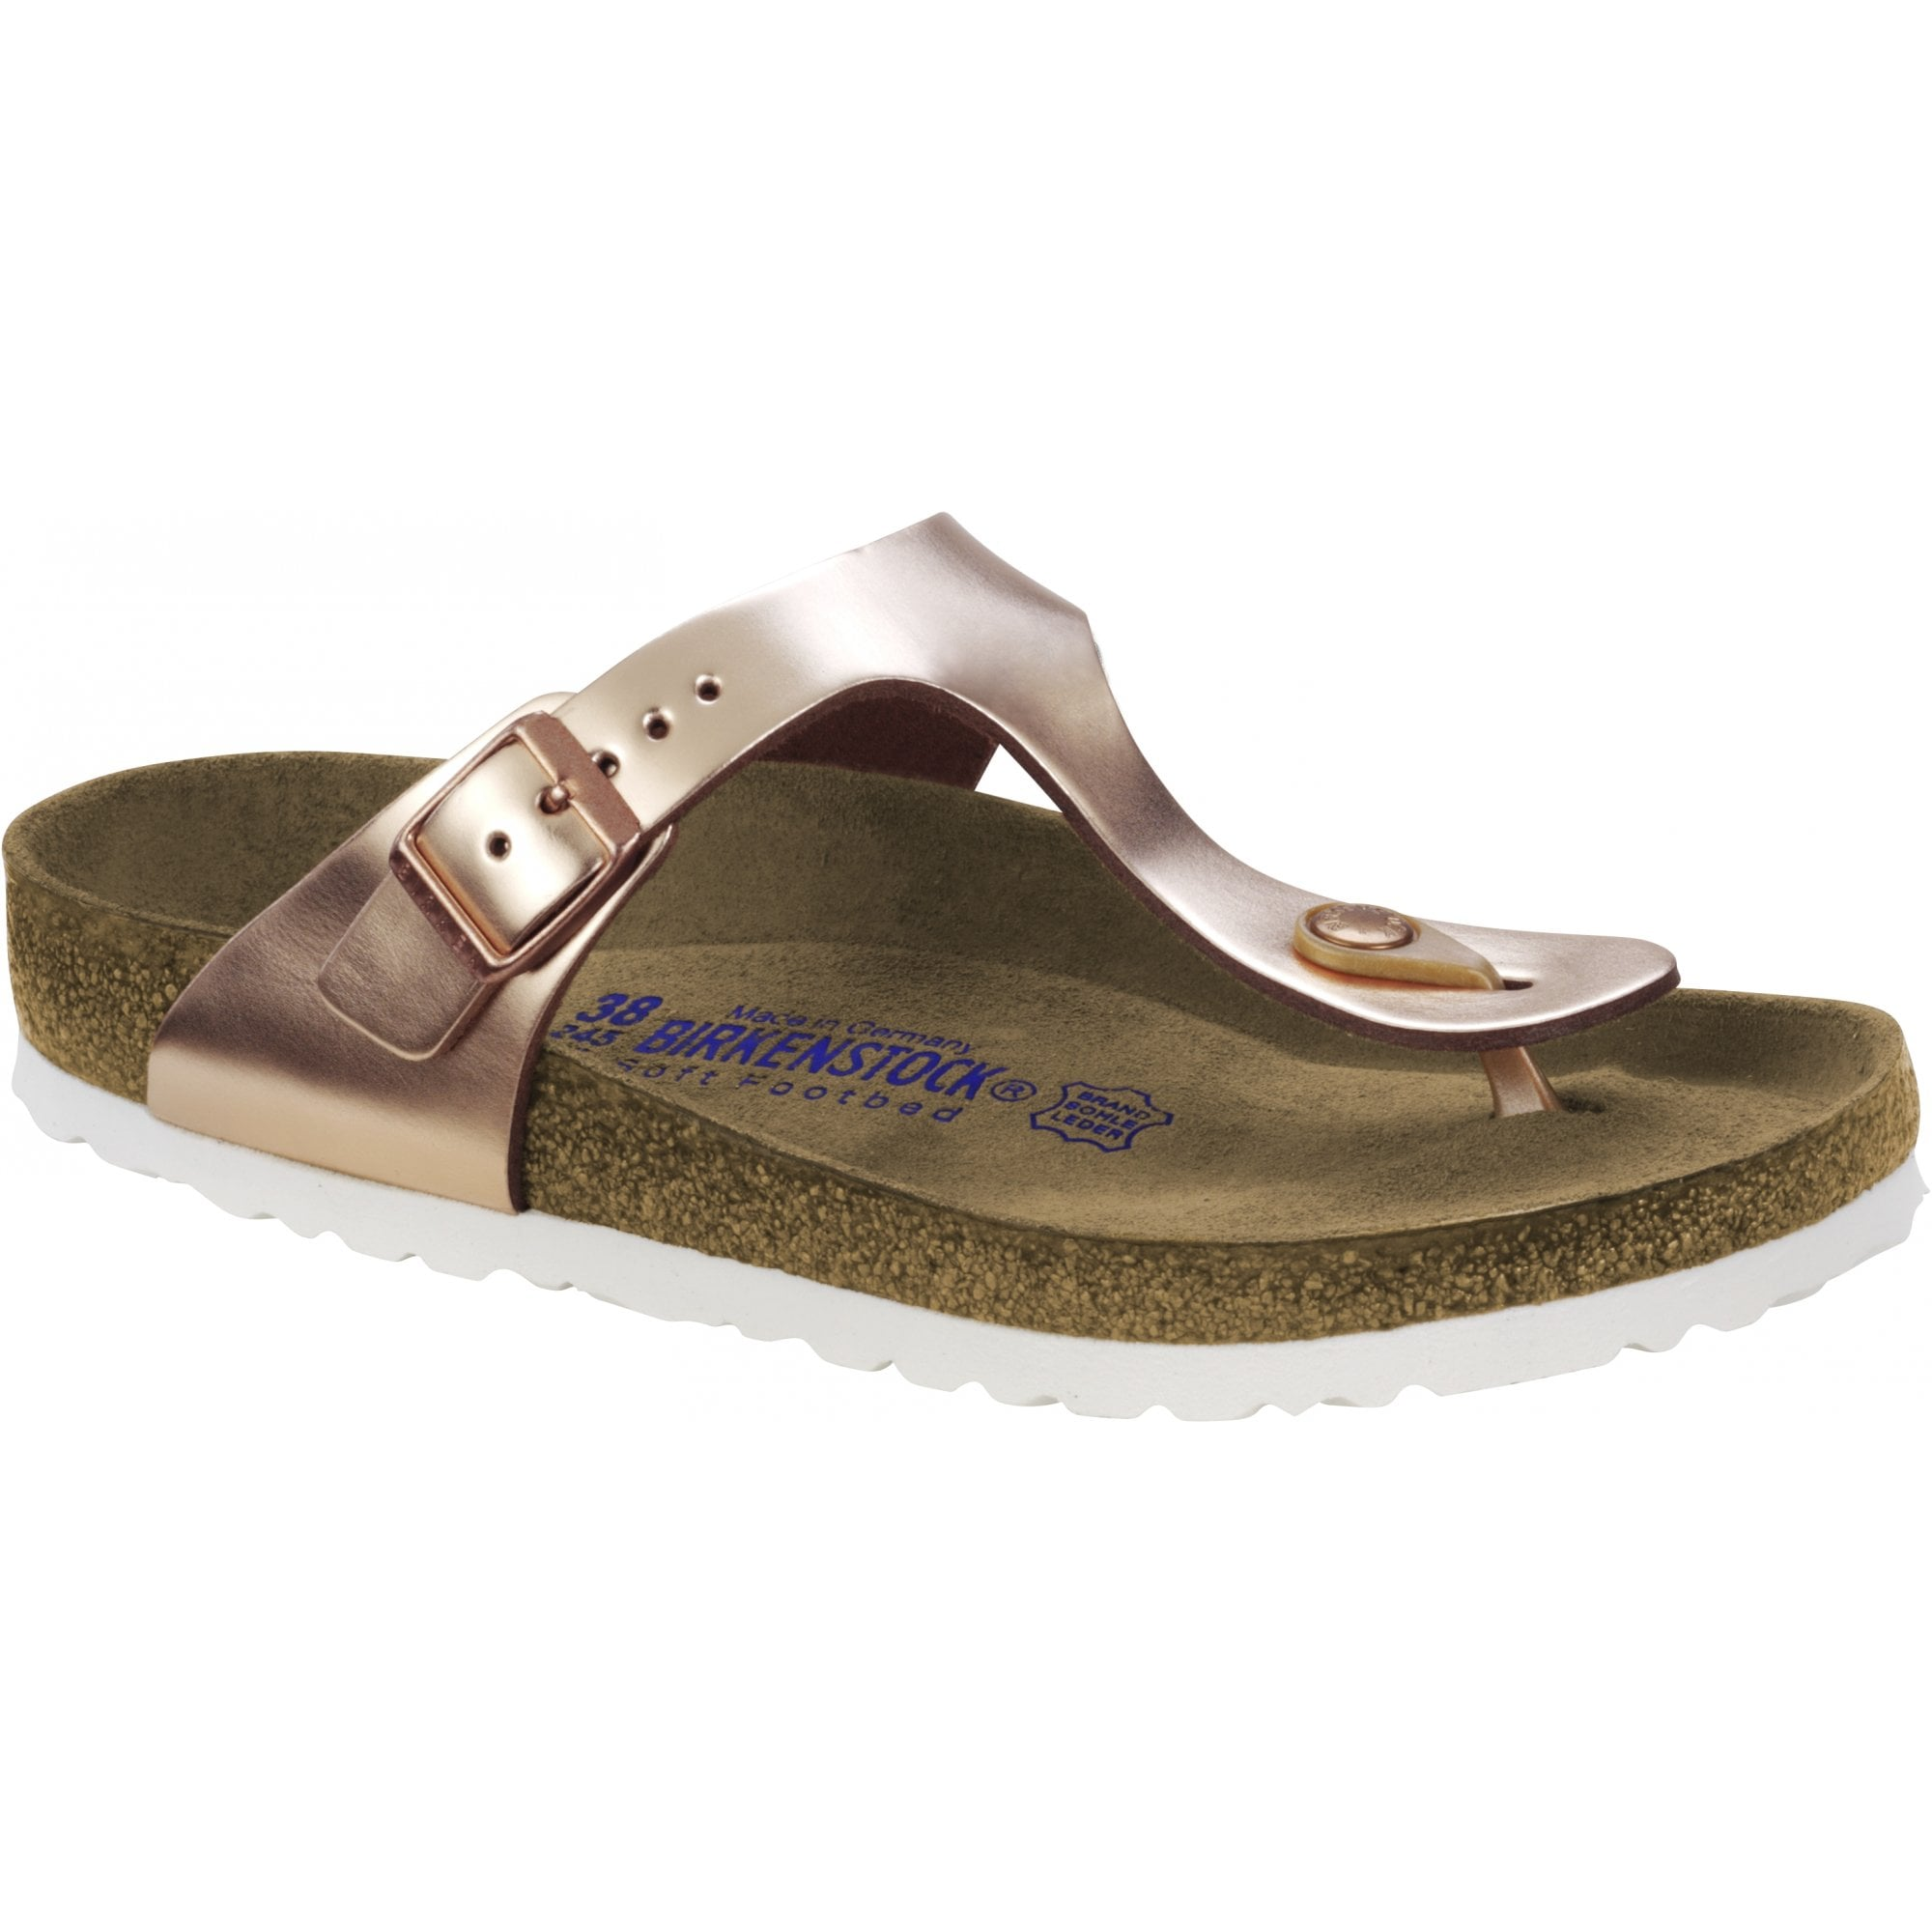 sneakers for cheap 3d010 23f25 Gizeh Soft Footbed Sandals in Metallic Copper